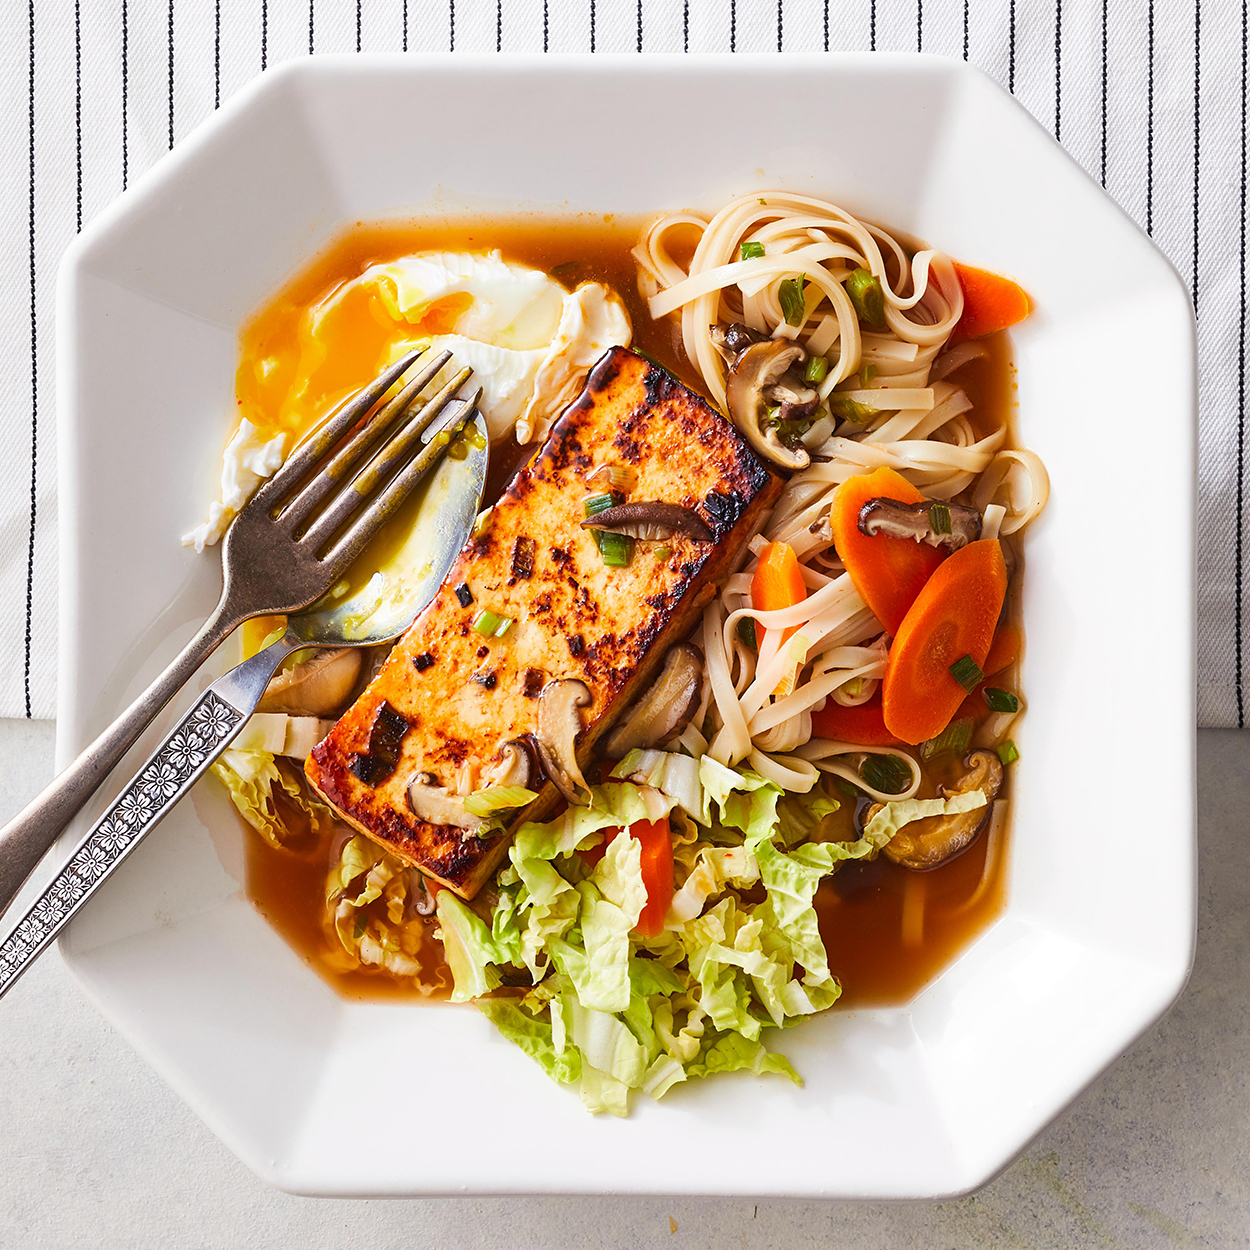 Tofu-Noodle Bowl with Poached Egg